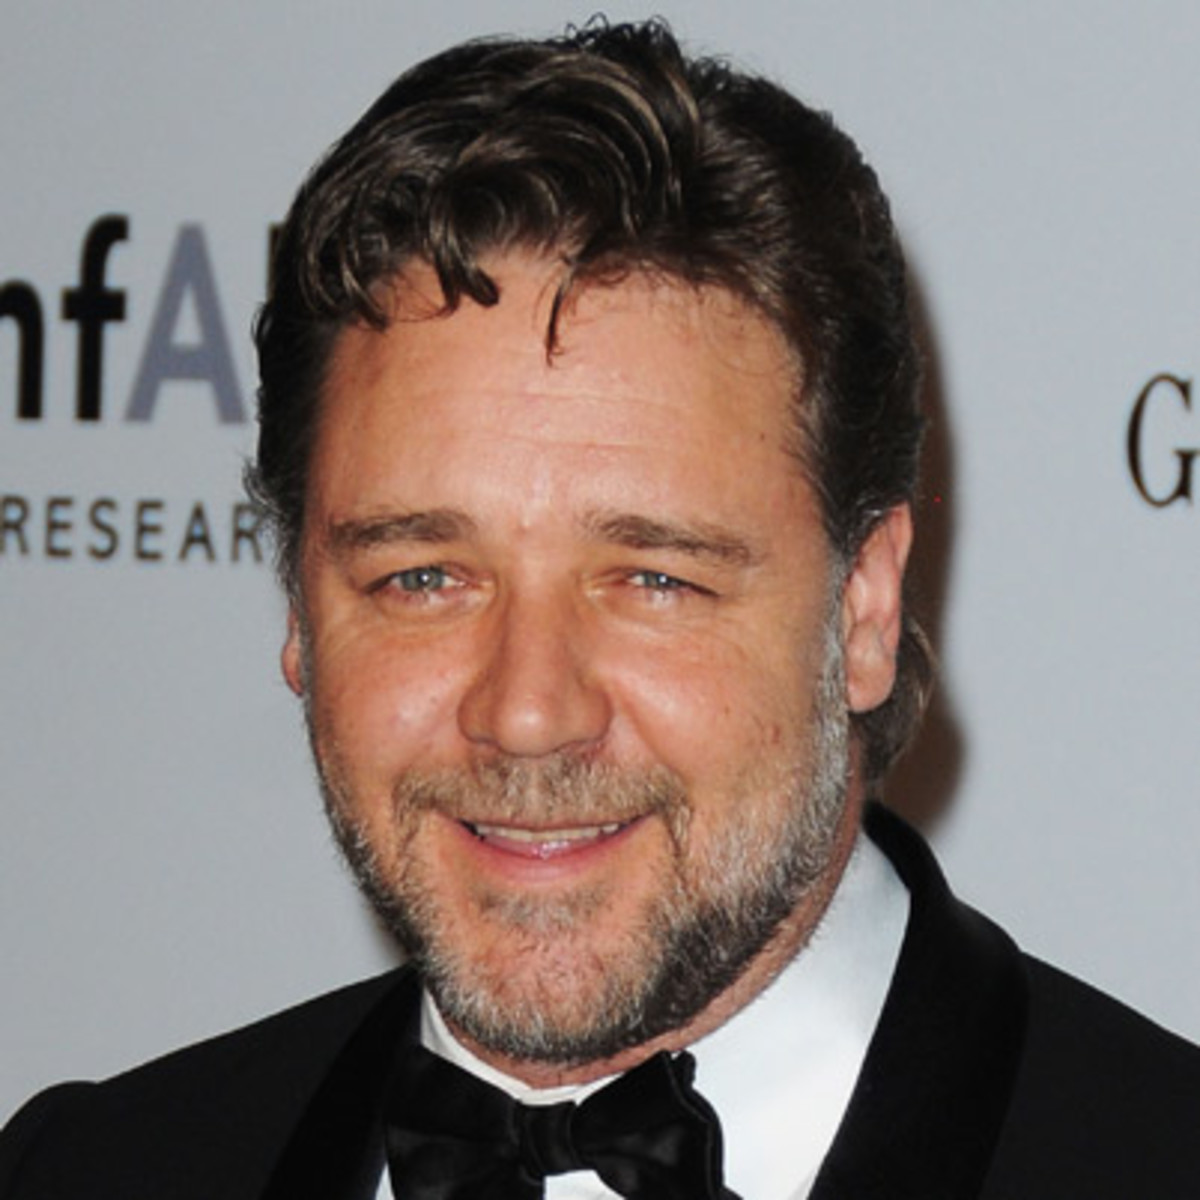 russell crowe tumblrrussell crowe films, russell crowe movies, russell crowe filmleri, russell crowe young, russell crowe 2016, russell crowe height, russell crowe gif, russell crowe twitter, russell crowe wiki, russell crowe beautiful mind, russell crowe 2017, russell crowe testify, russell crowe tumblr, russell crowe good year, russell crowe cinderella man, russell crowe photoshoot, russell crowe noah, russell crowe imdb, russell crowe filmebi, russell crowe vse filmi